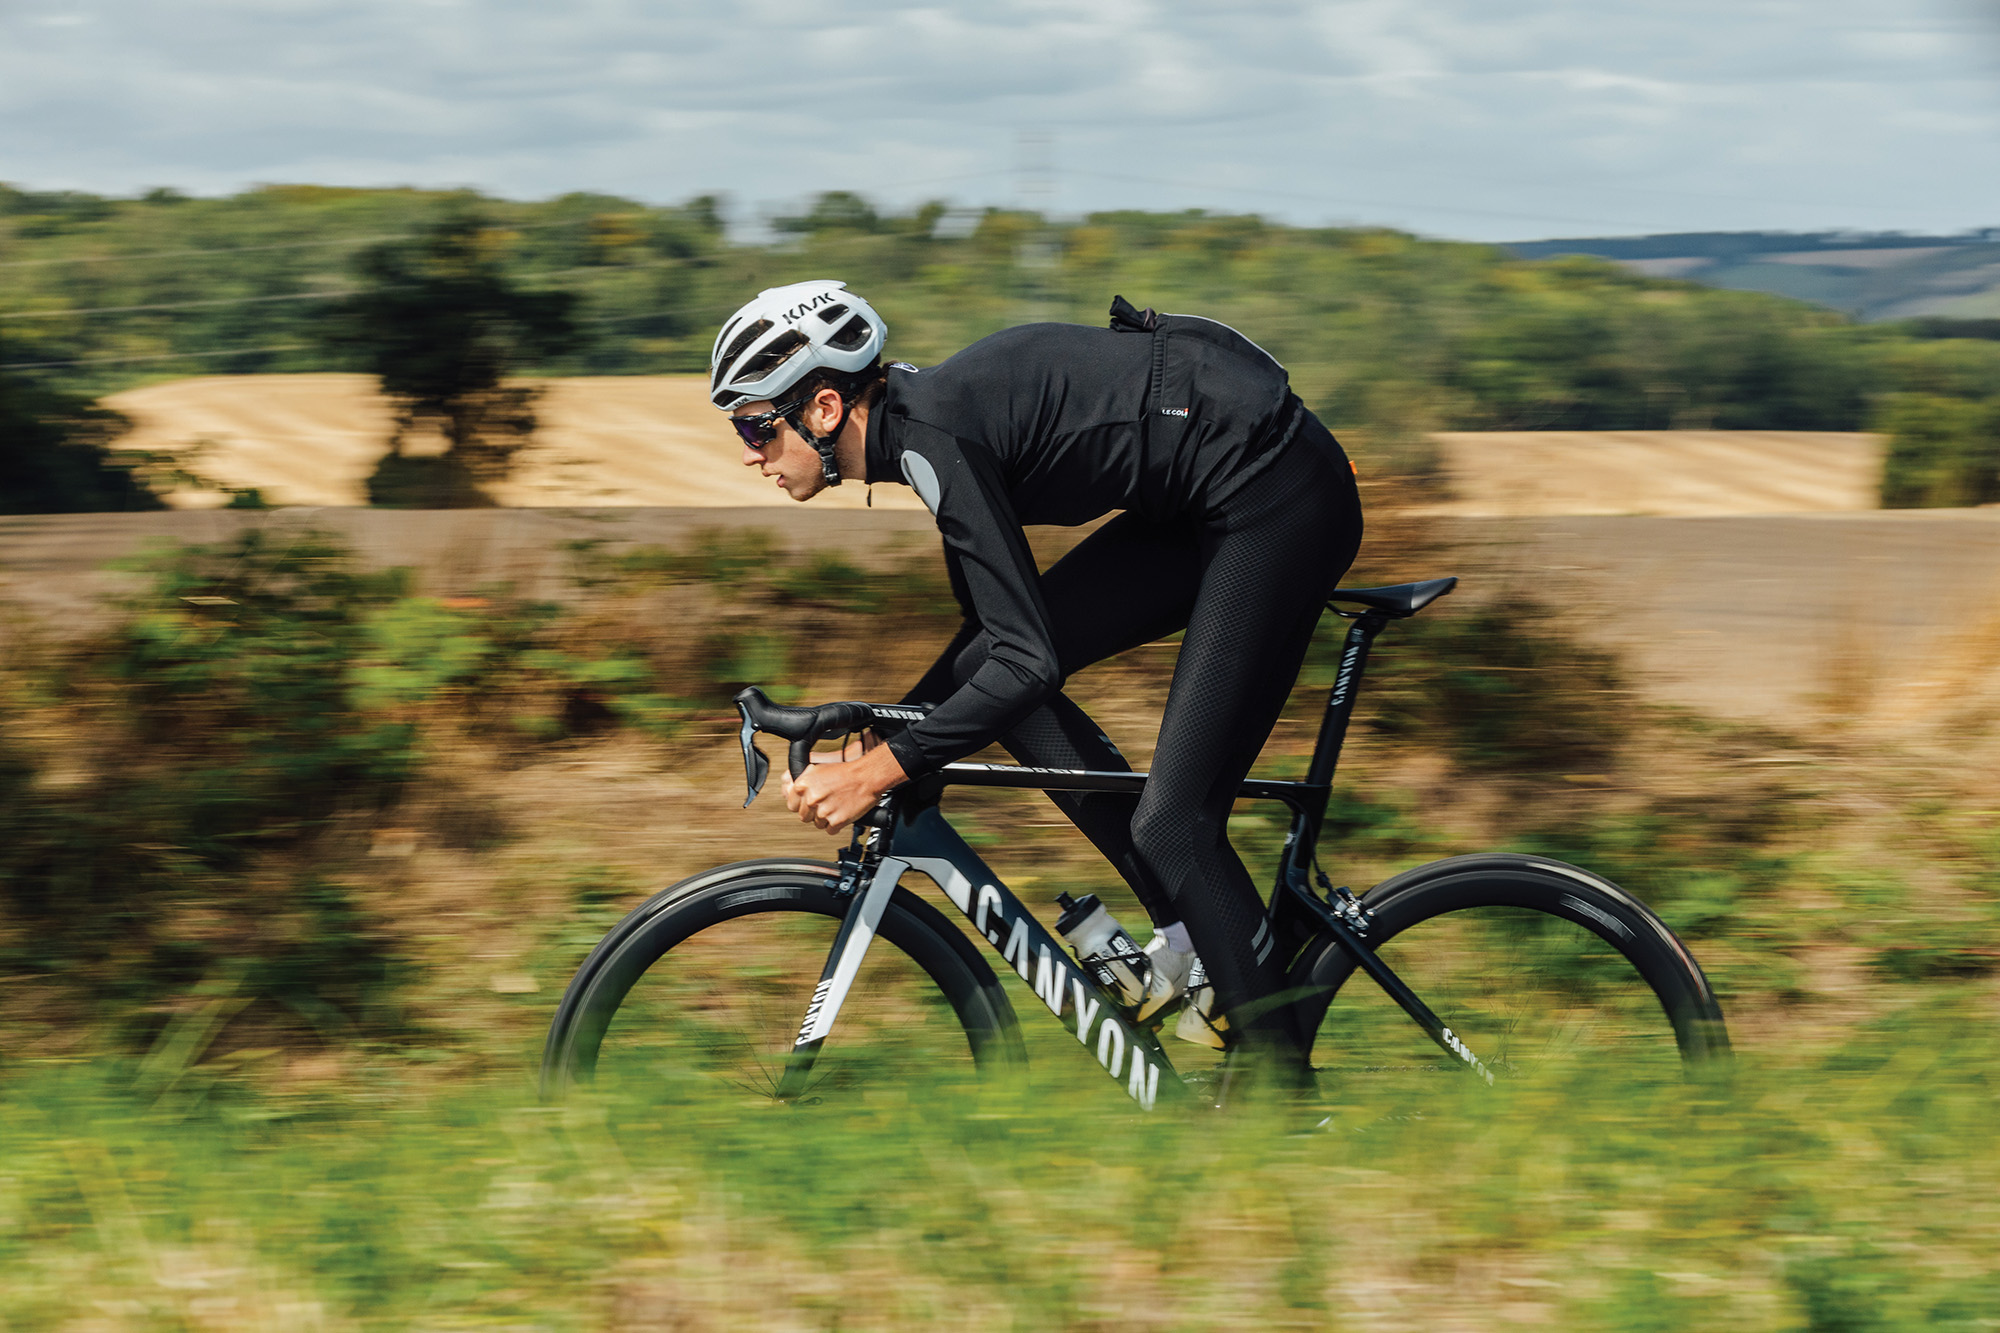 Sunday trading: bike deals from around the web including Garmin, Oakley, SRAM and more - Cycling Weekly